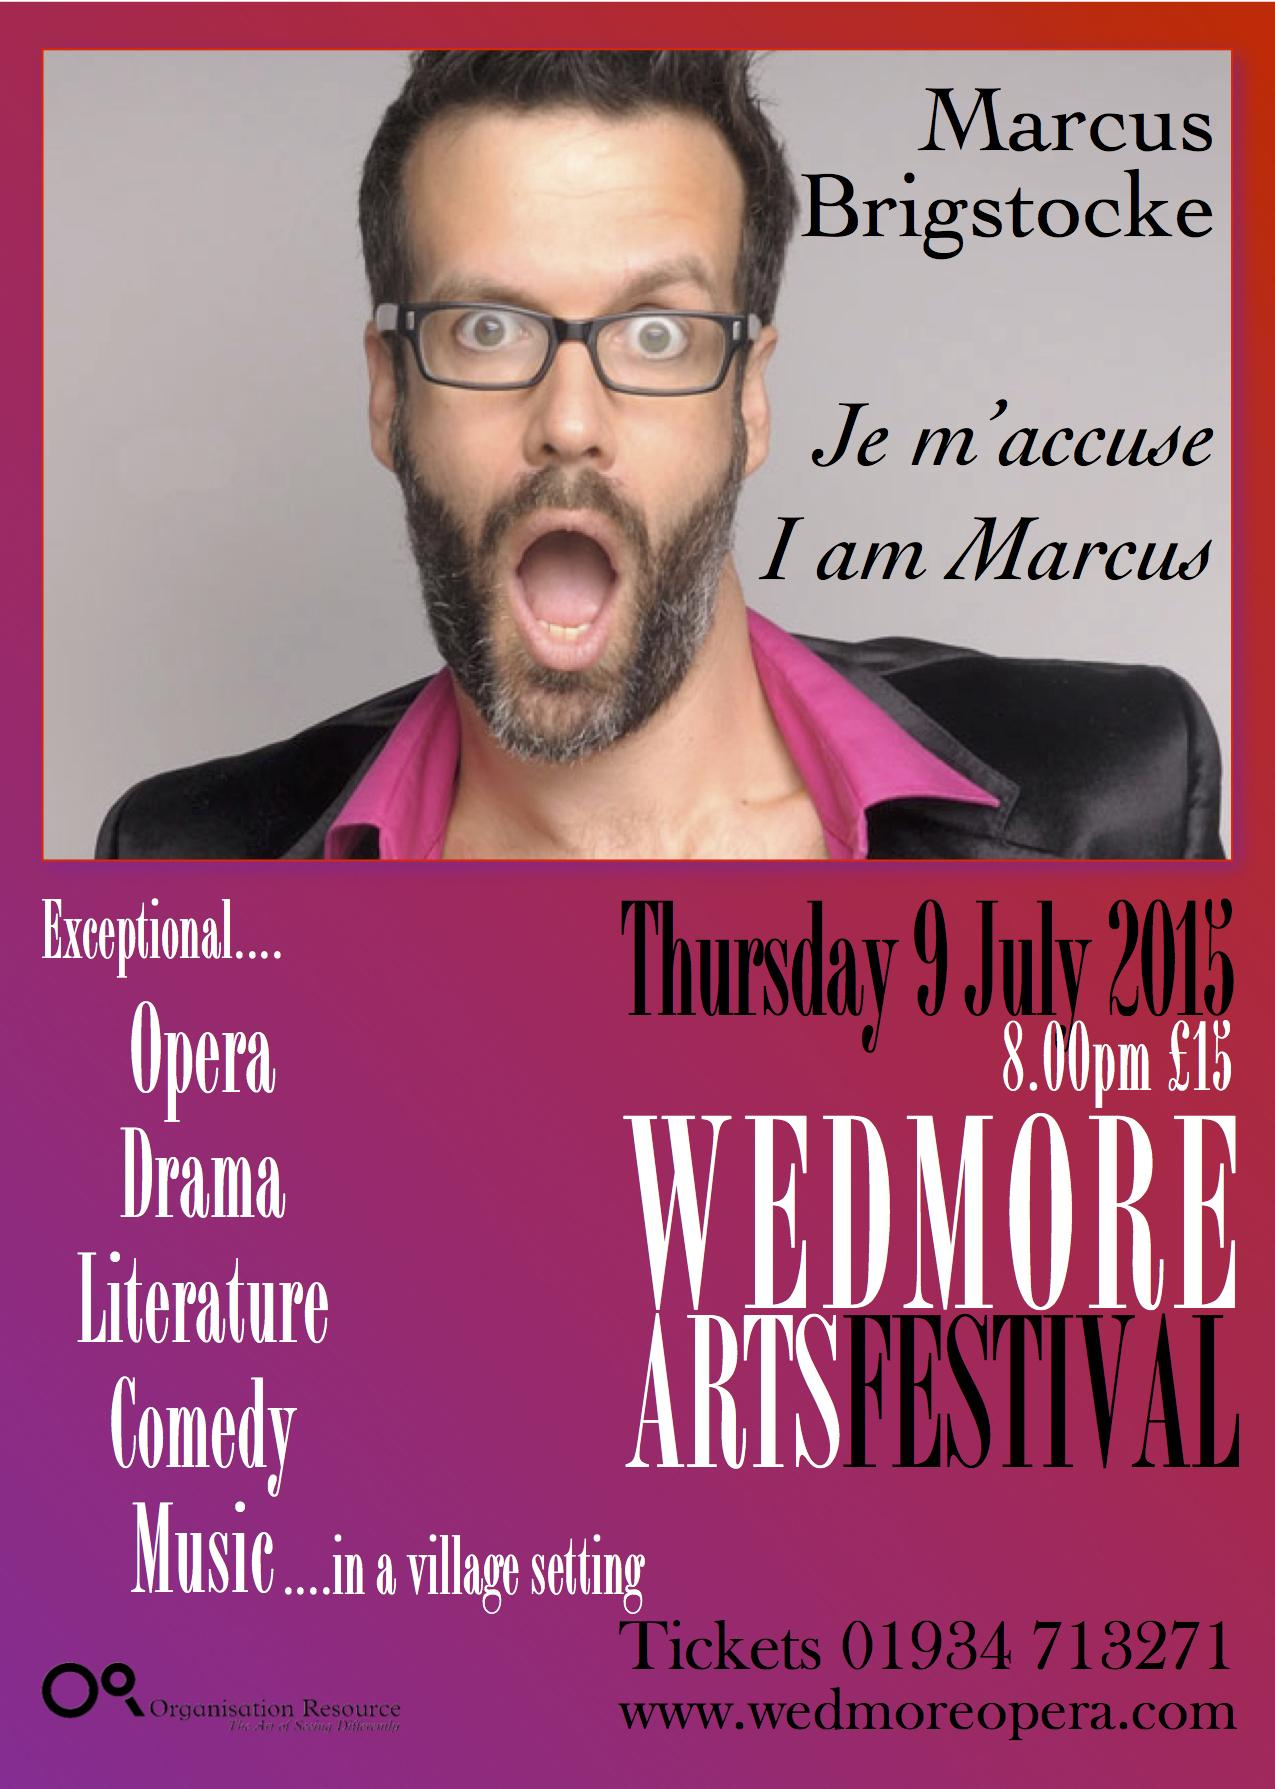 RT @ArtsFestWedmore: @ComedySouthWest Not long to wait! @marcusbrig Marcus Brigstocke in #Wedmore Thursday at 8 Tix http://t.co/WHwifrsgJC …